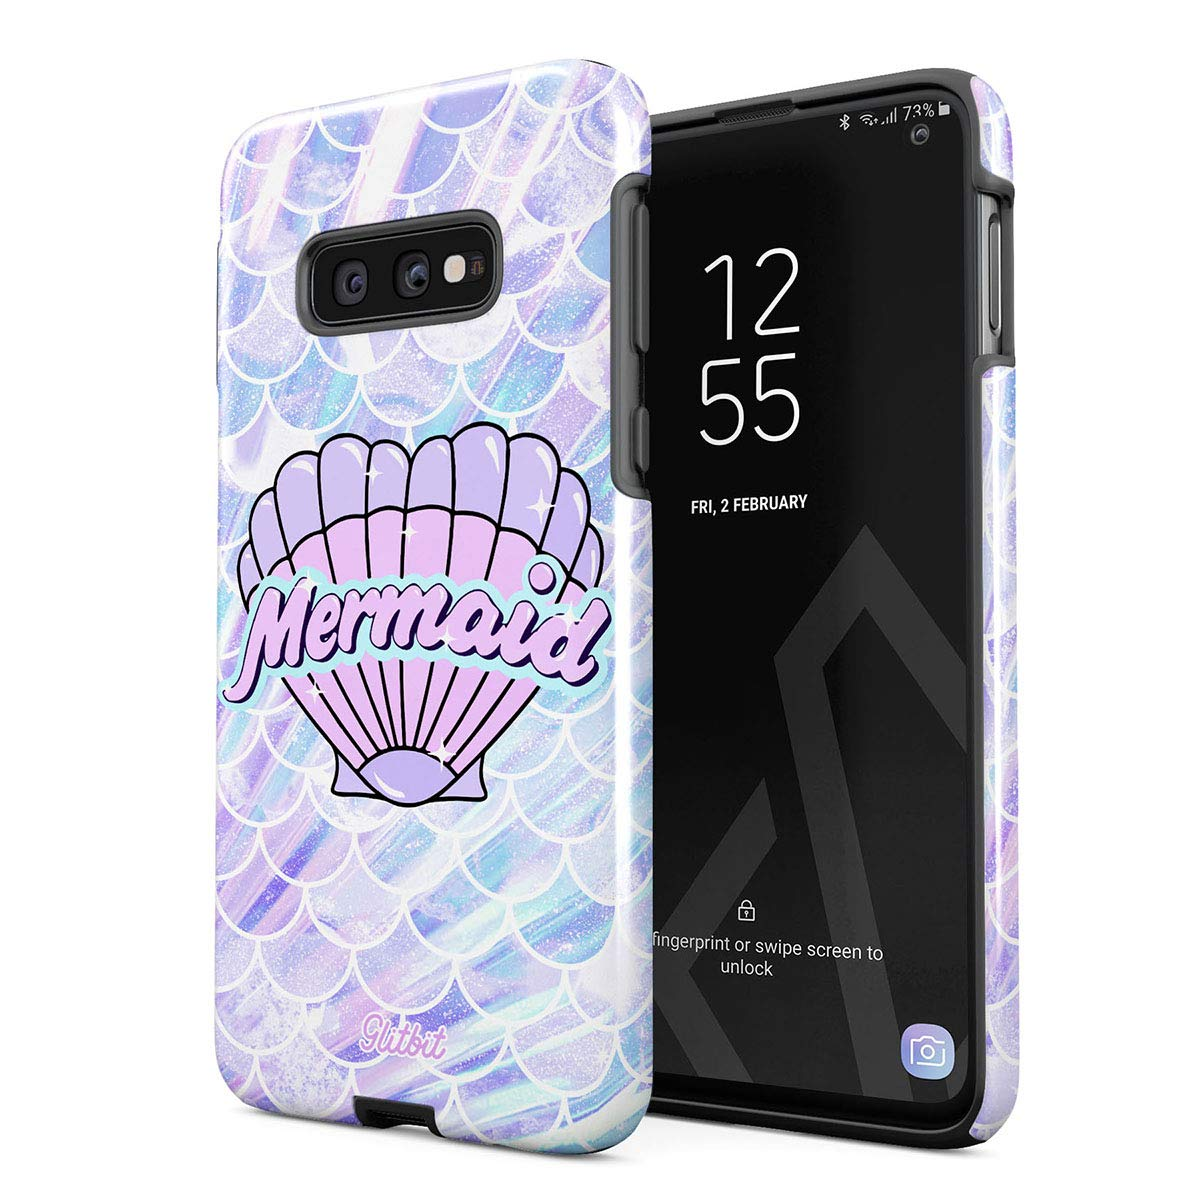 Glitbit Compatible with Samsung Galaxy S10e Case Mermaid Seashell Paua Abalone Queen Princess of The Ocean Pastel Purple Aesthetic Shockproof Dual Layer Hard Shell + Silicone Protective Cover by Glitbit